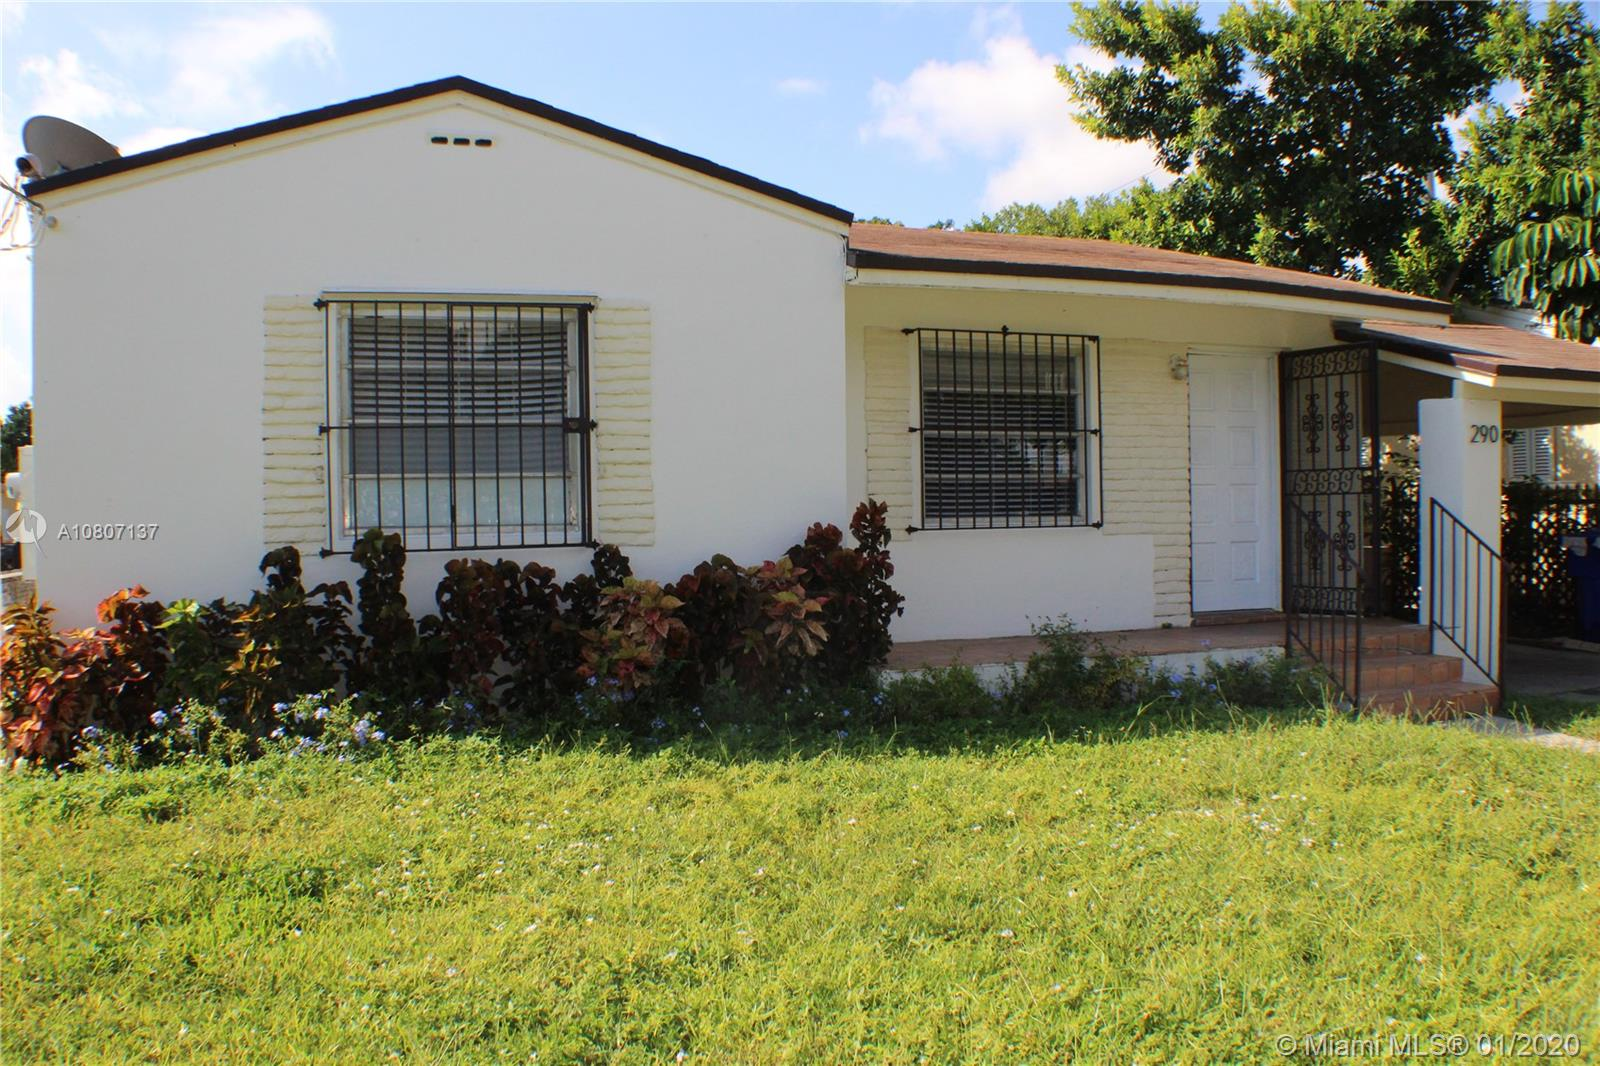 290 NW 48th St, Miami, Florida 33127, 2 Bedrooms Bedrooms, ,1 BathroomBathrooms,Residential,For Sale,290 NW 48th St,A10807137